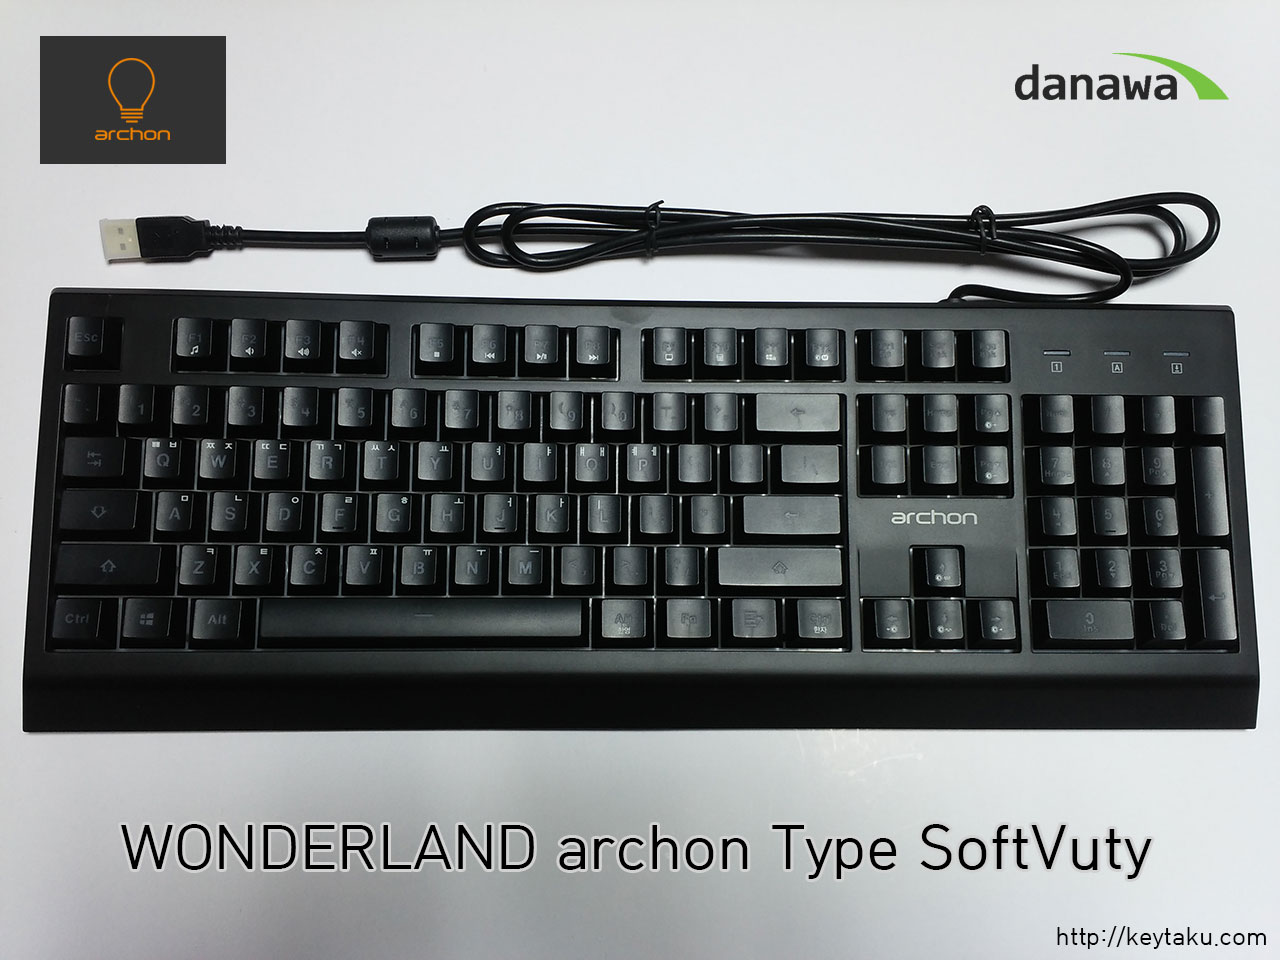 WONDERLAND archon Type SoftVuty 멤브레..